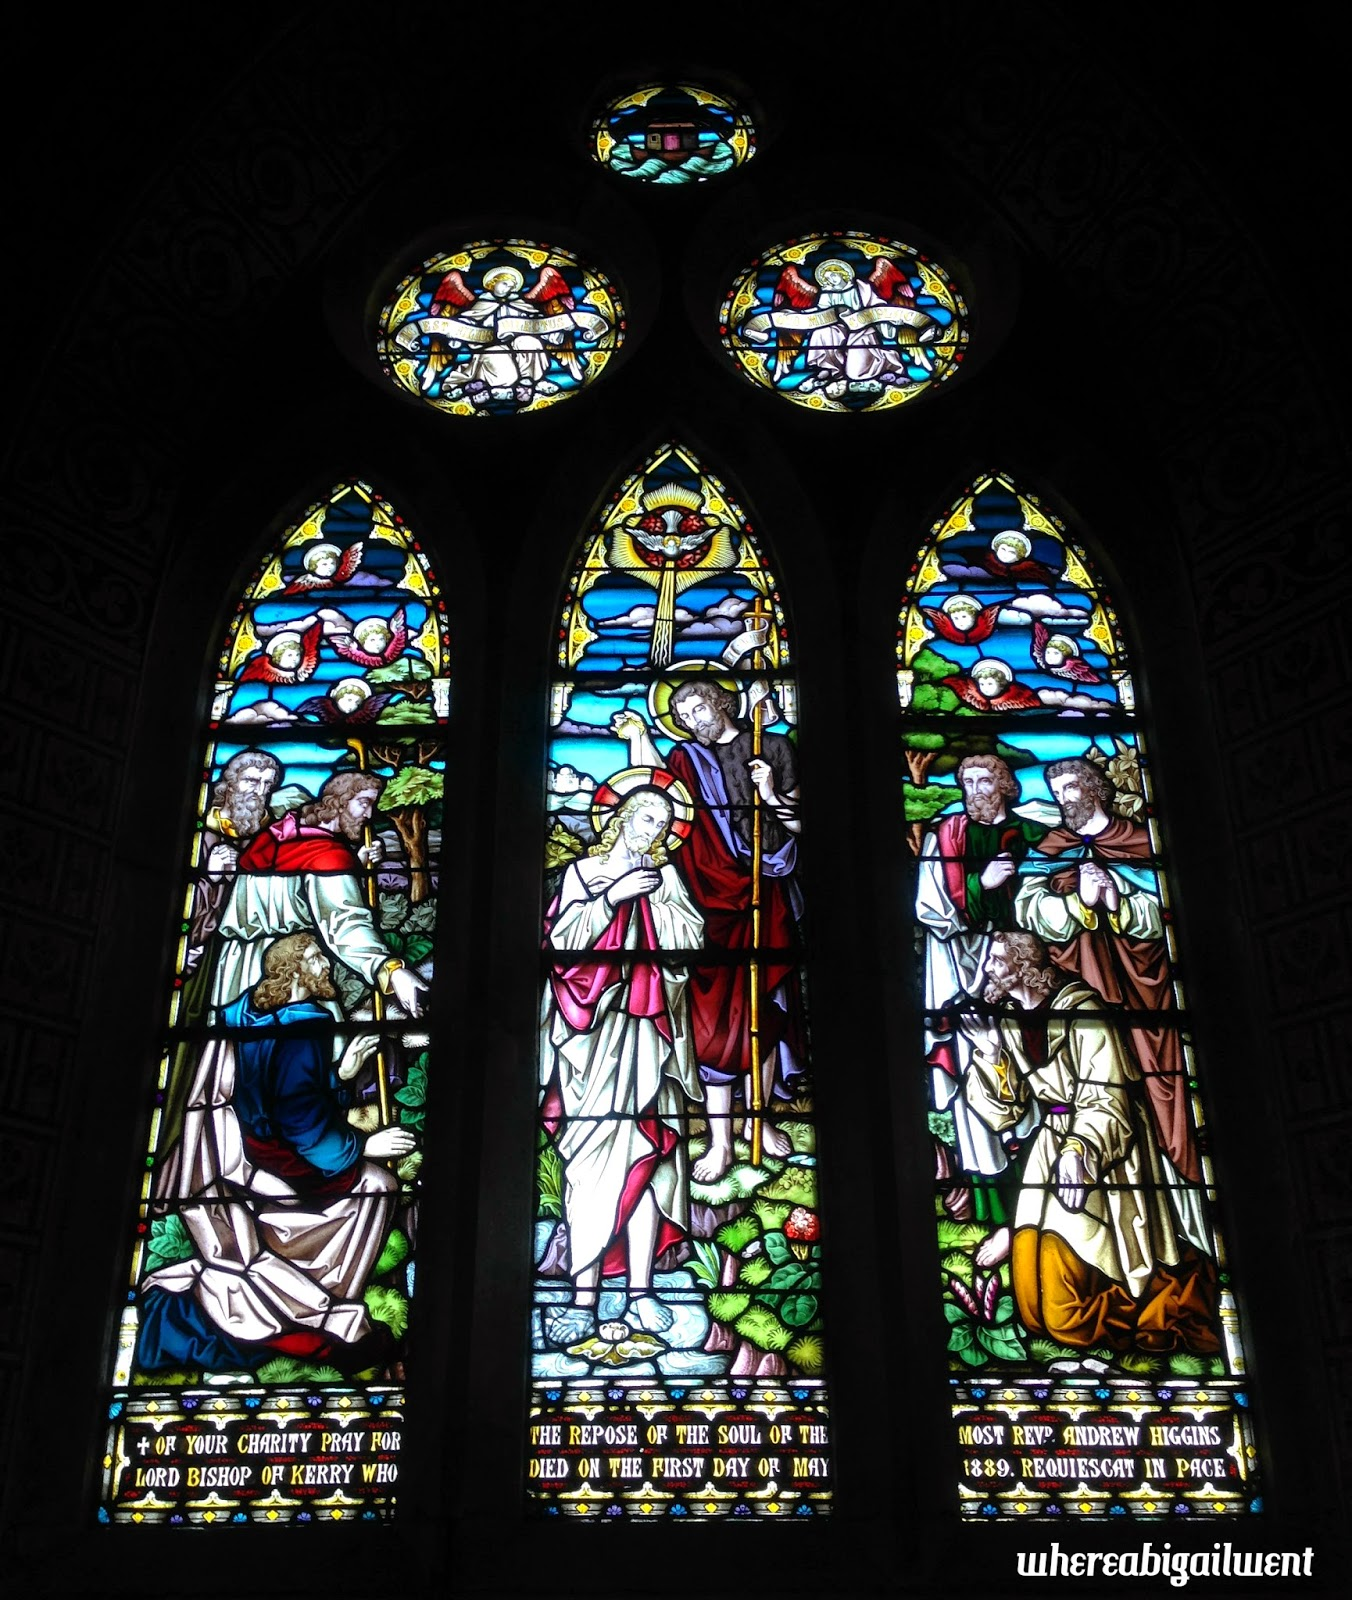 The baptism of Jesus stained glass window